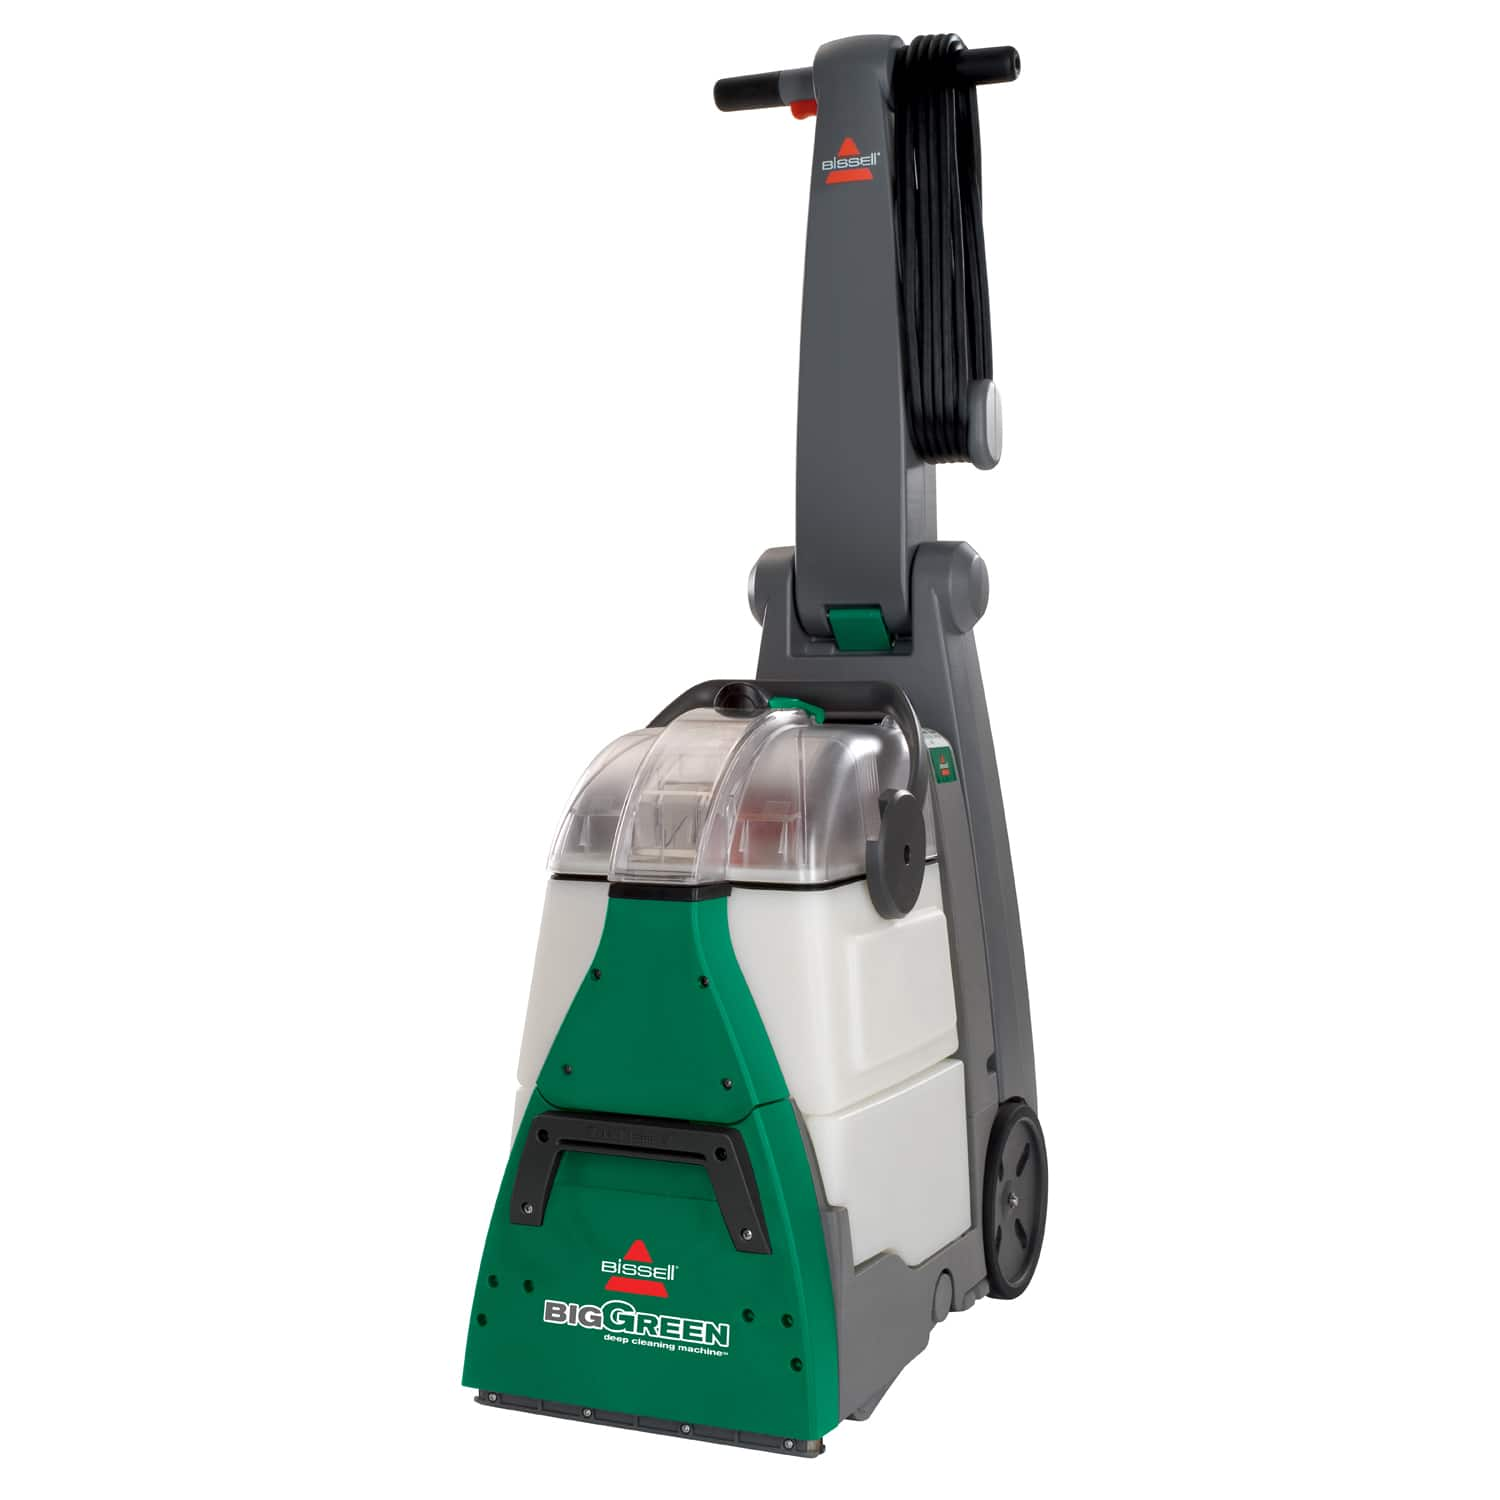 Bissell Big Green Professional Carpet Cleaner - Amazon - $351